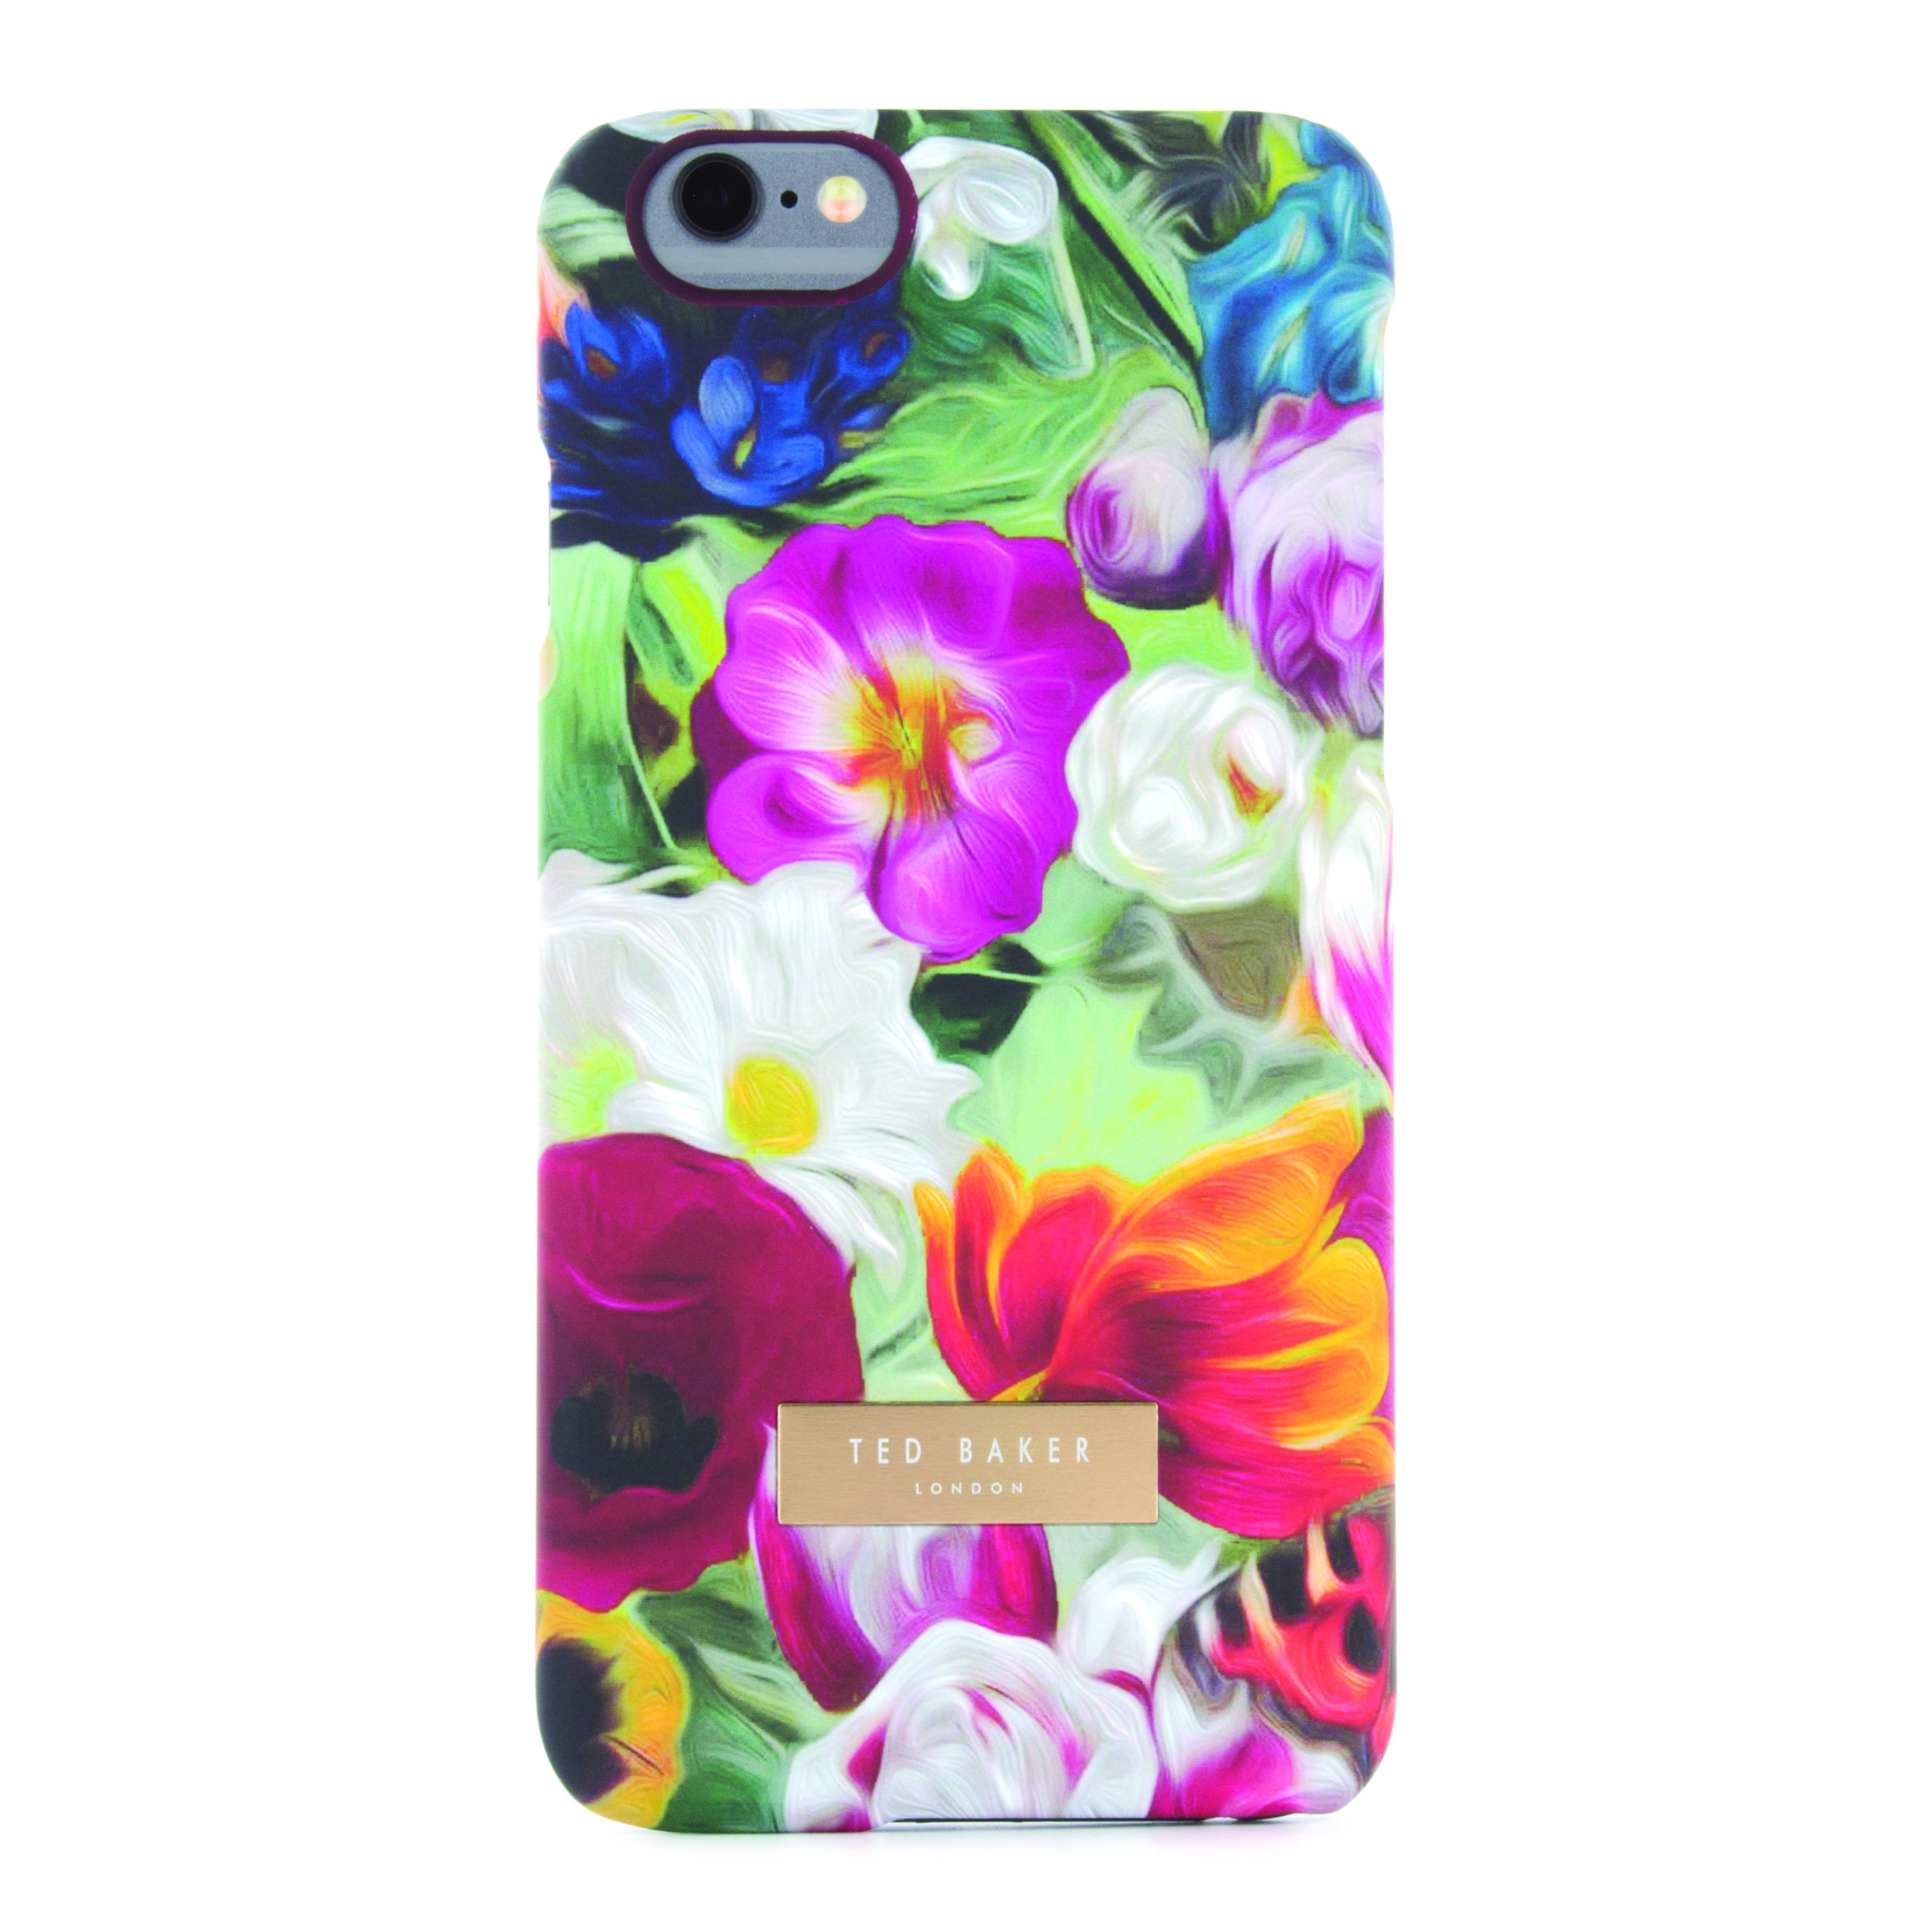 34a772b98f8bec 10 Stylish Cases Your iPhone Needs